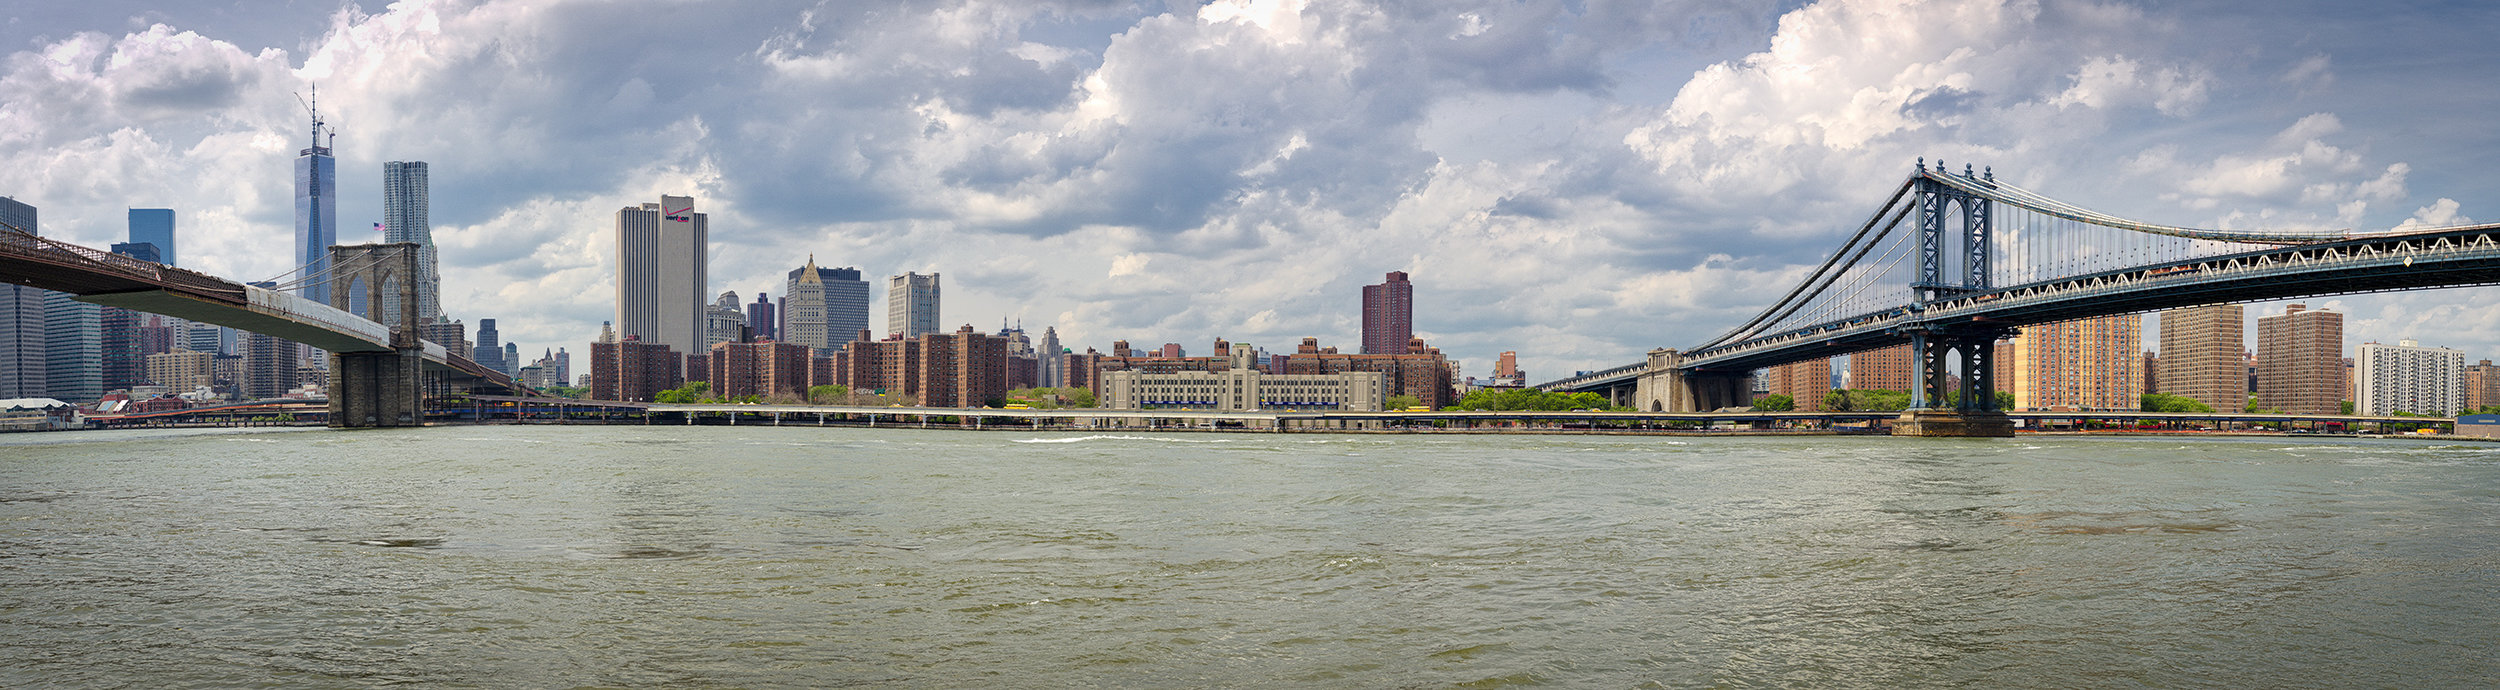 Location and Date: Brooklyn, New York, USA; 02 Jun 2013  Tech Specs: 1/400s @ f/8.0; ISO 100. 13 image panorama  Camera & Lens: Canon 5D Mark III; Canon EF 24-70 f/2.8L USM